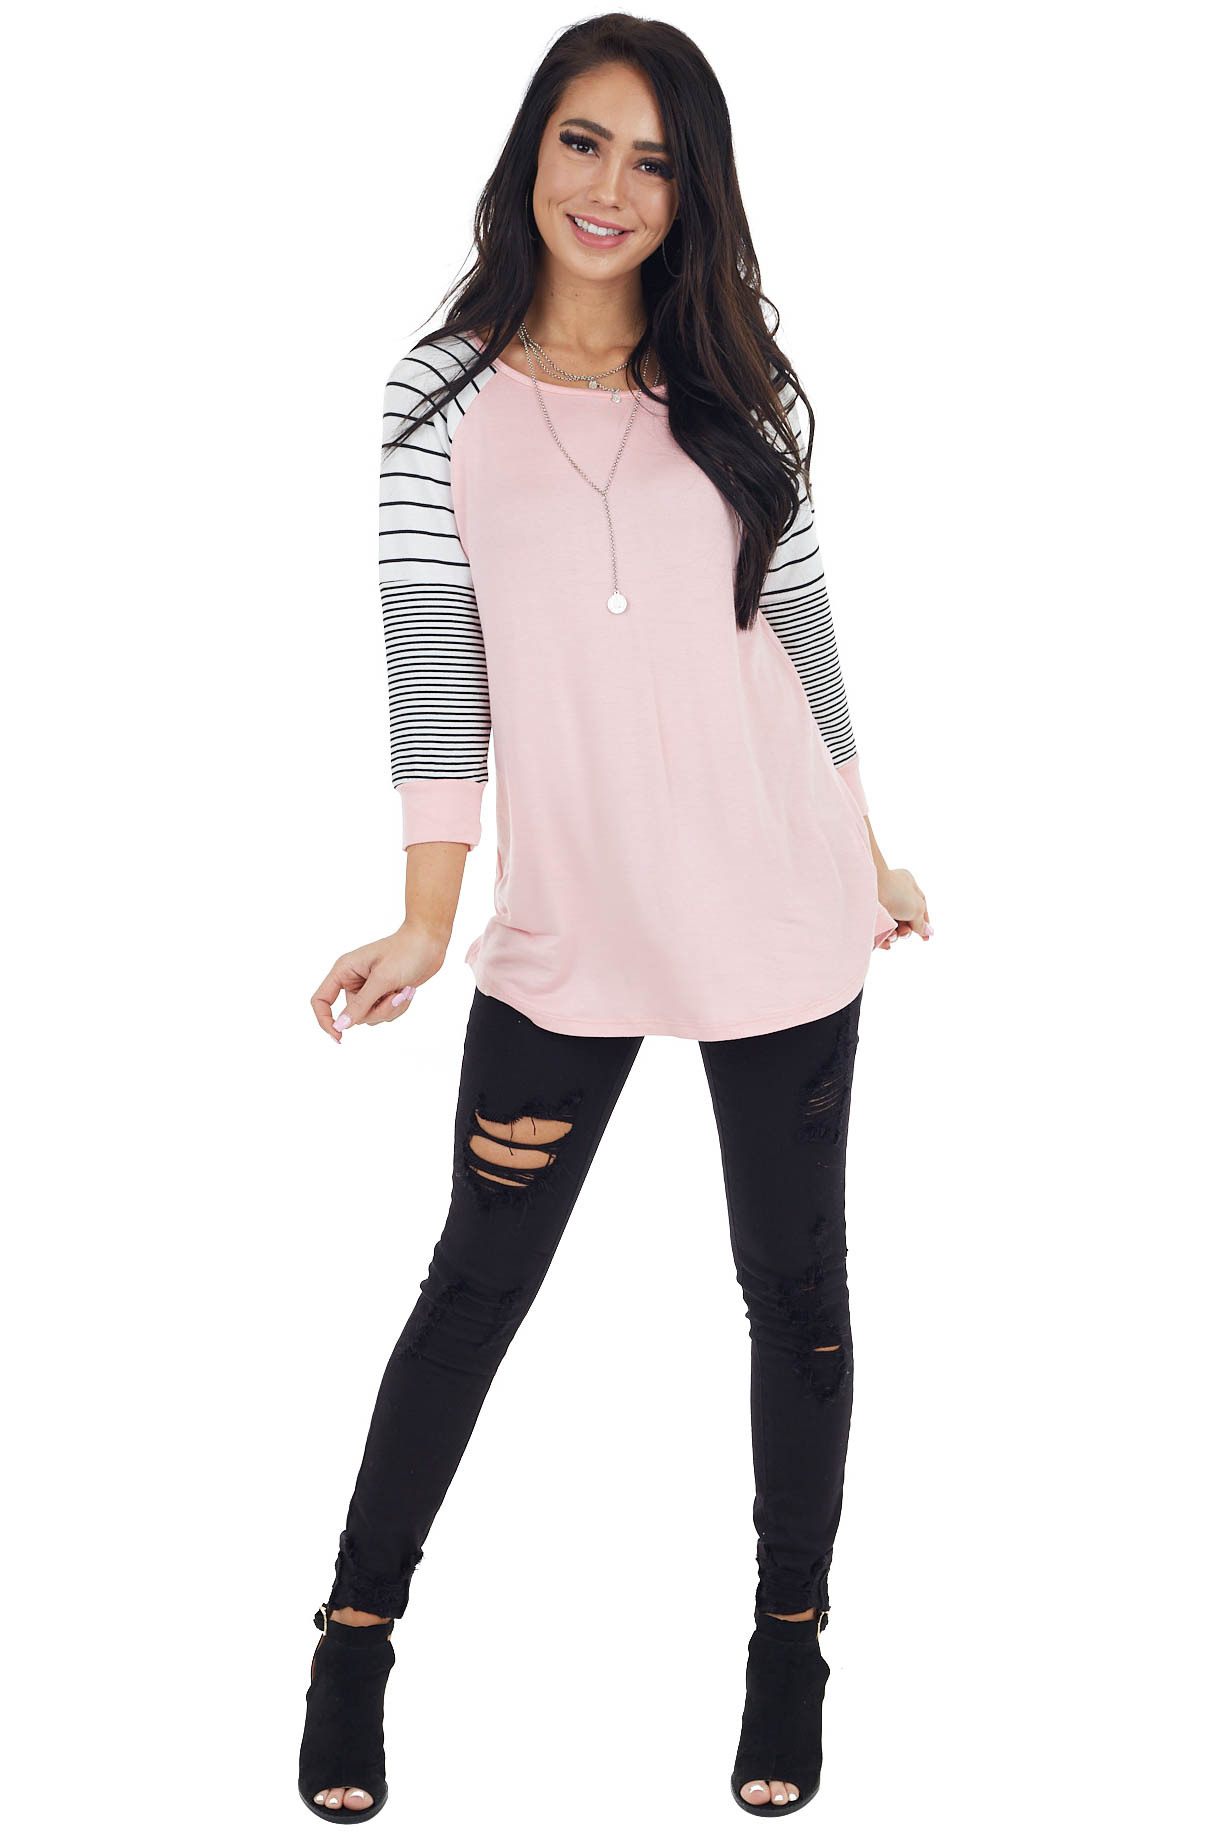 Baby Pink 3/4 Striped Raglan Sleeve Top with Rounded Neck